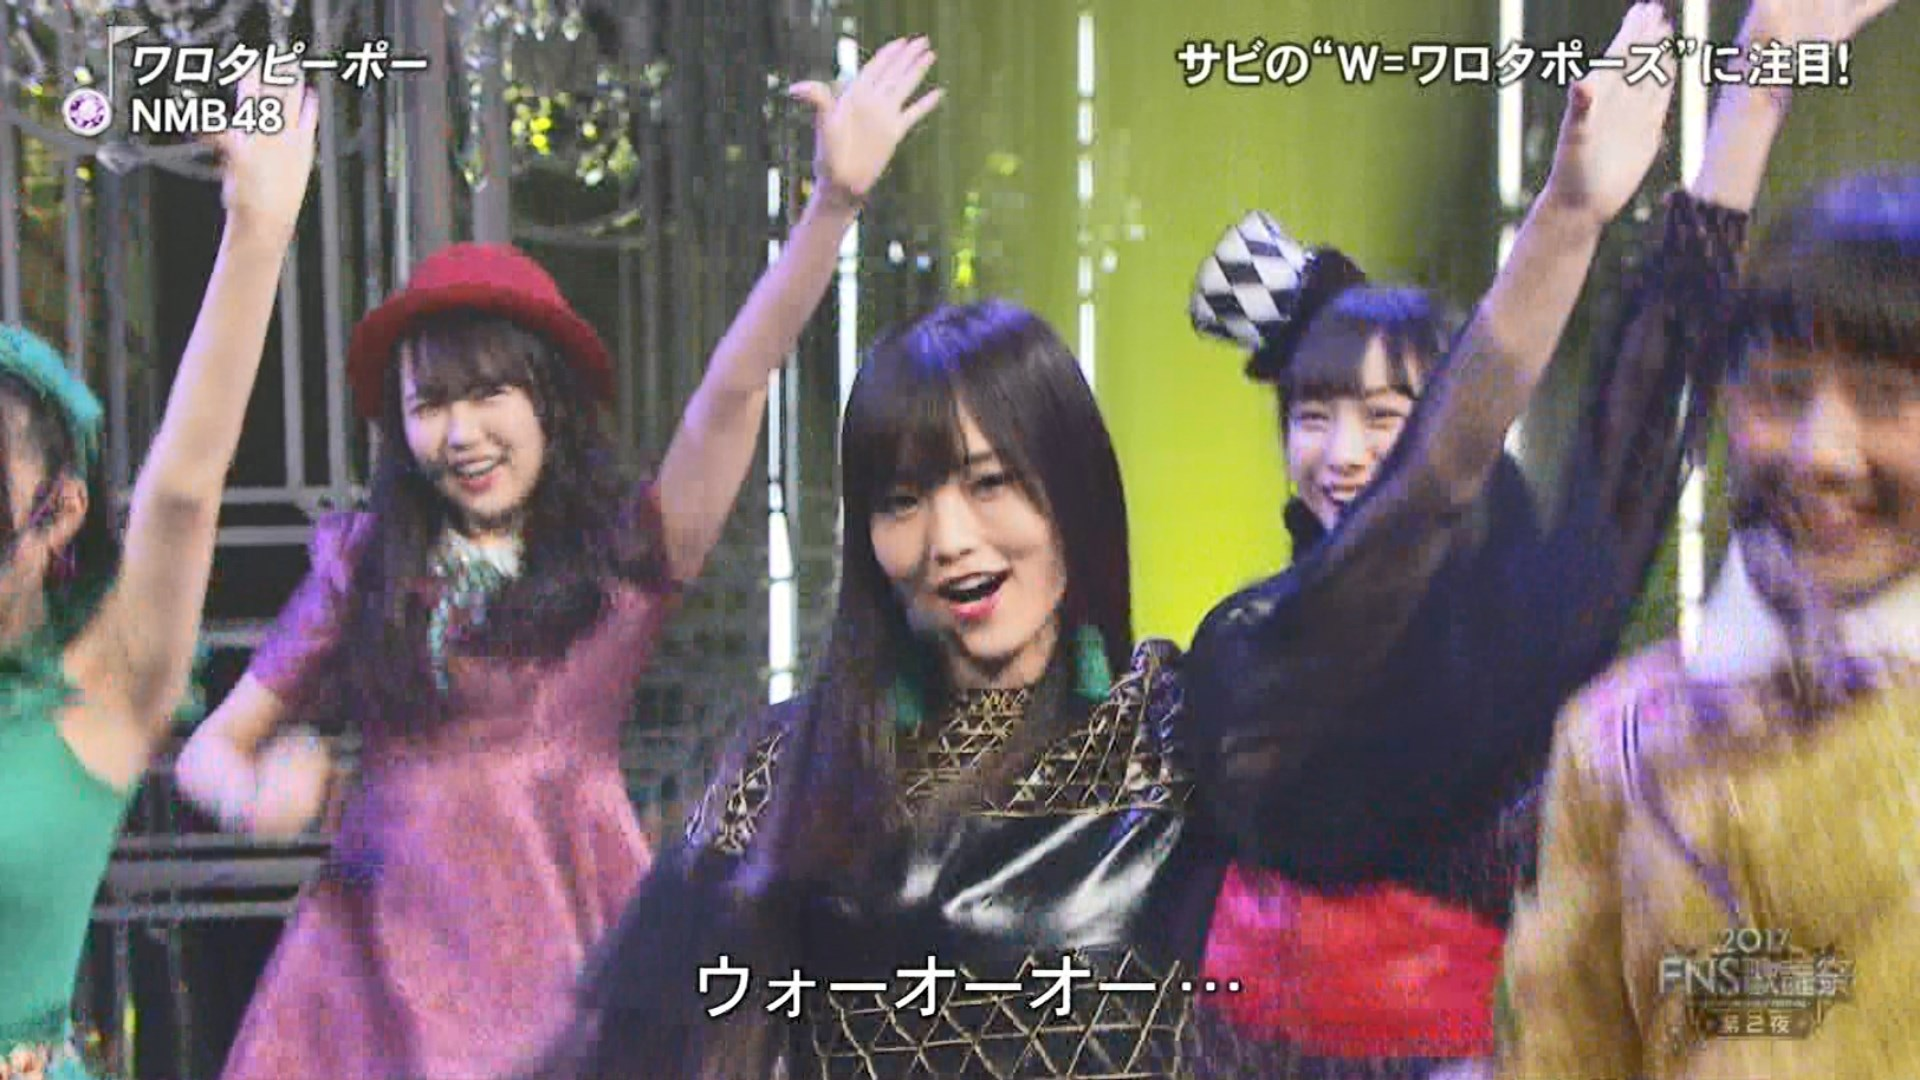 2017FNS歌謡祭第2夜・NMB48ワロタピーポーキャプ-007